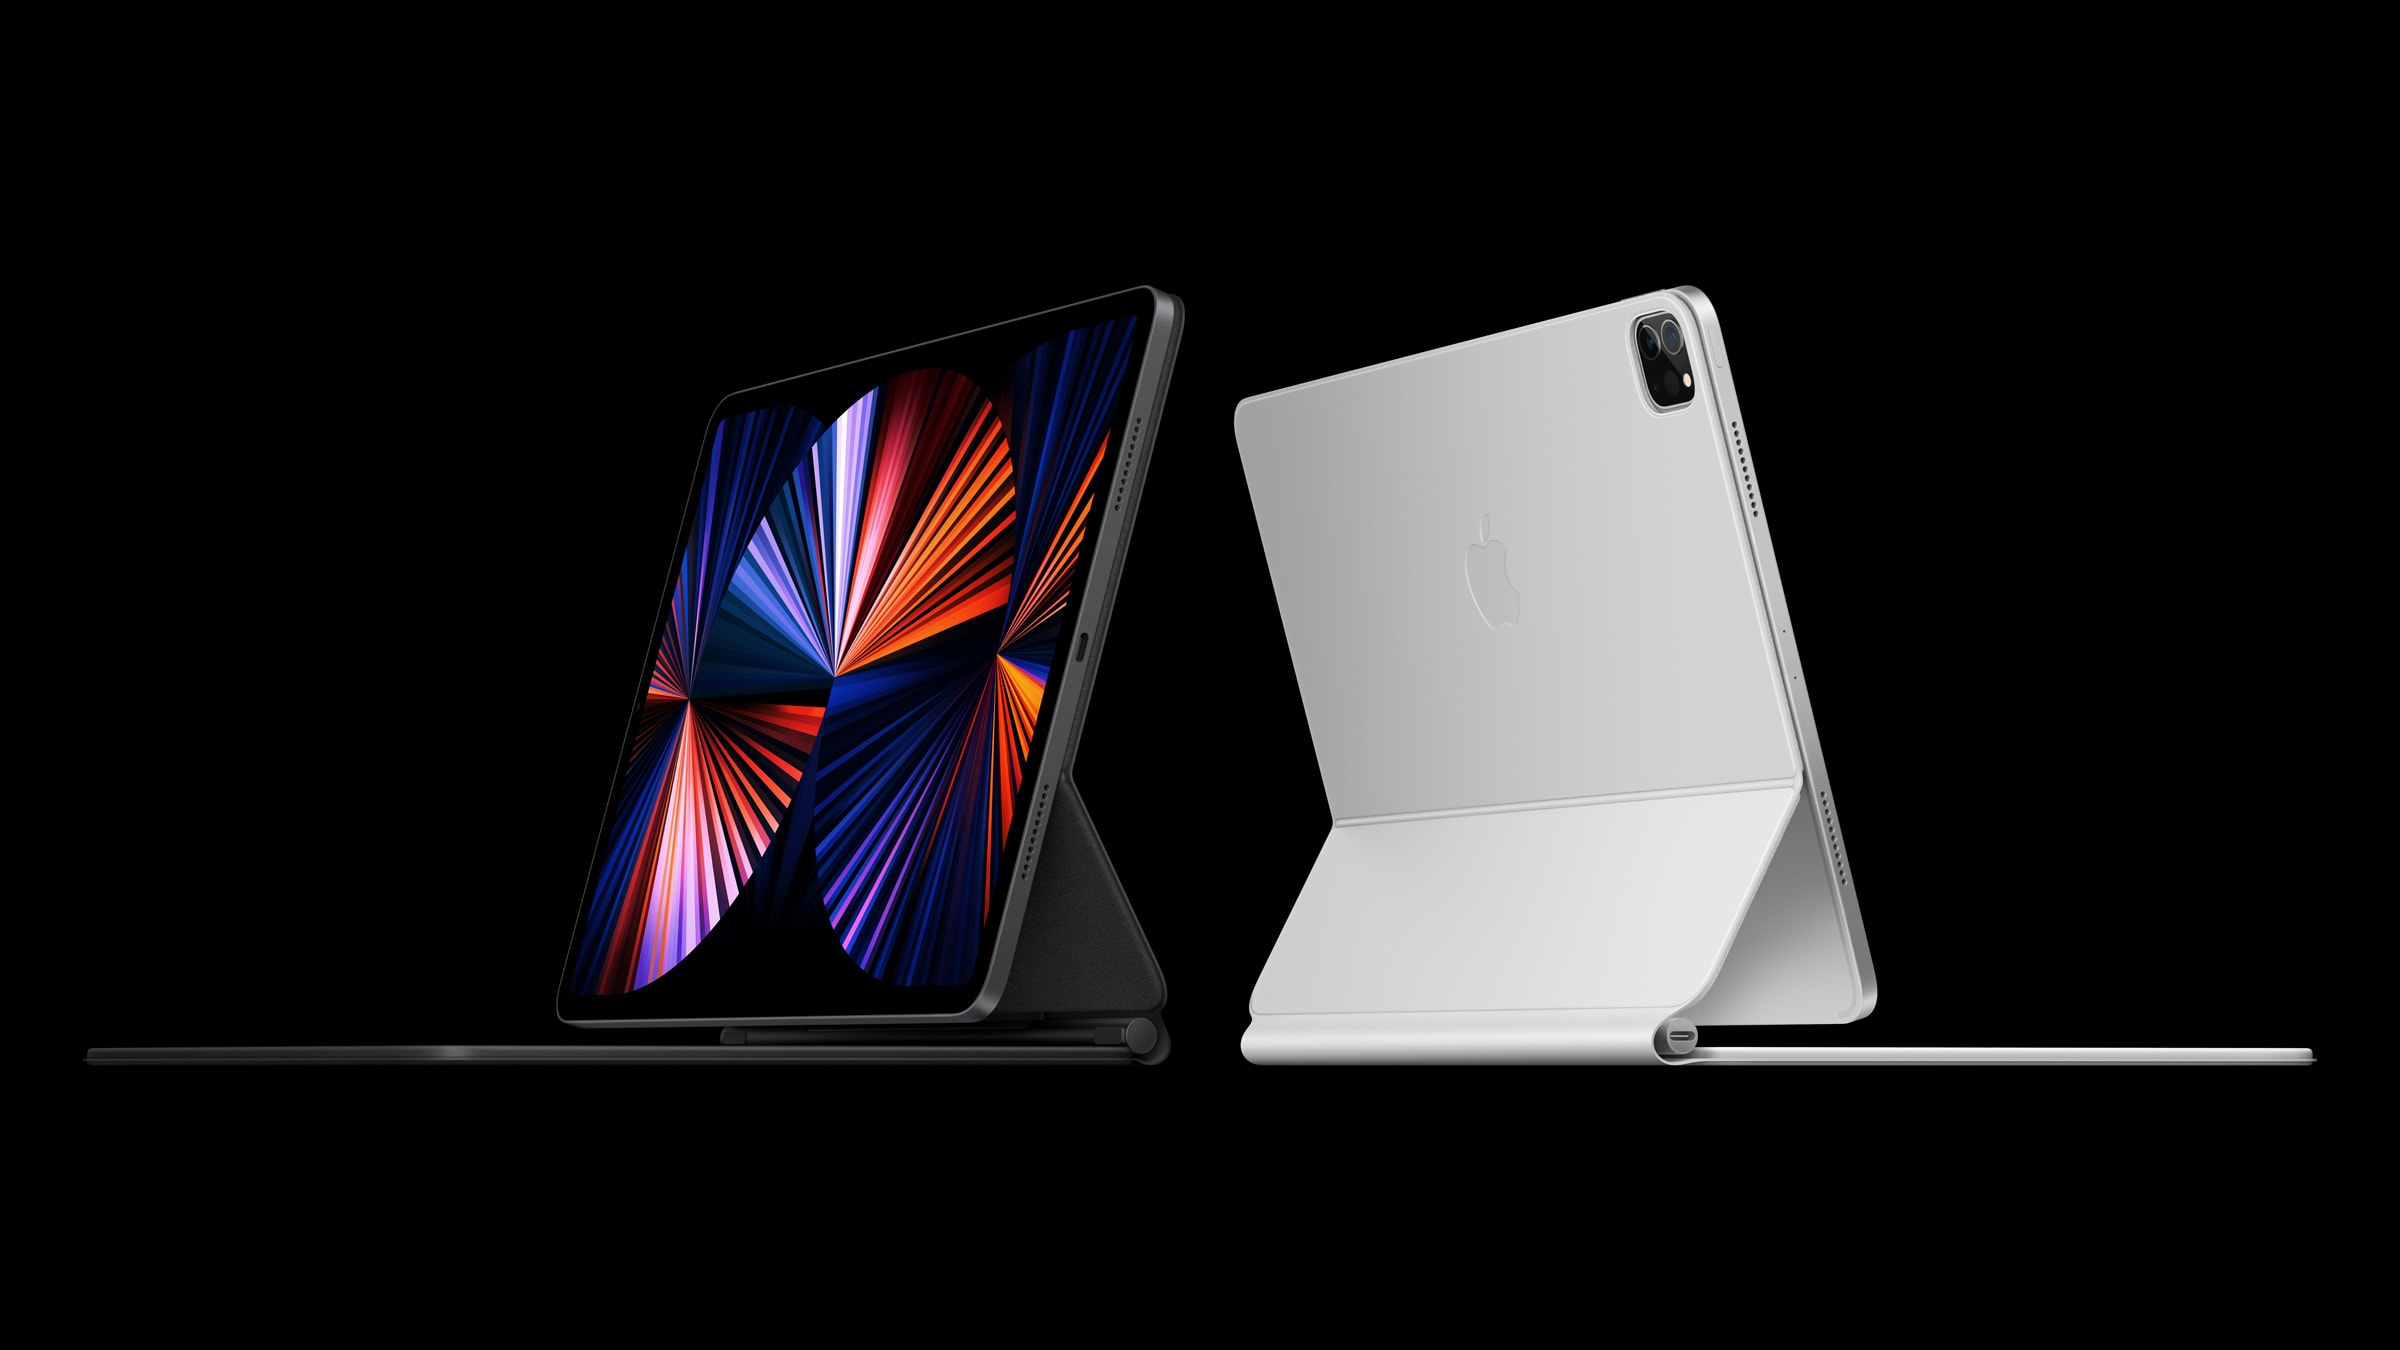 How to preorder a 2021 iPad Pro: The 2021 iPad Pro also comes with a new Magic Keyboard